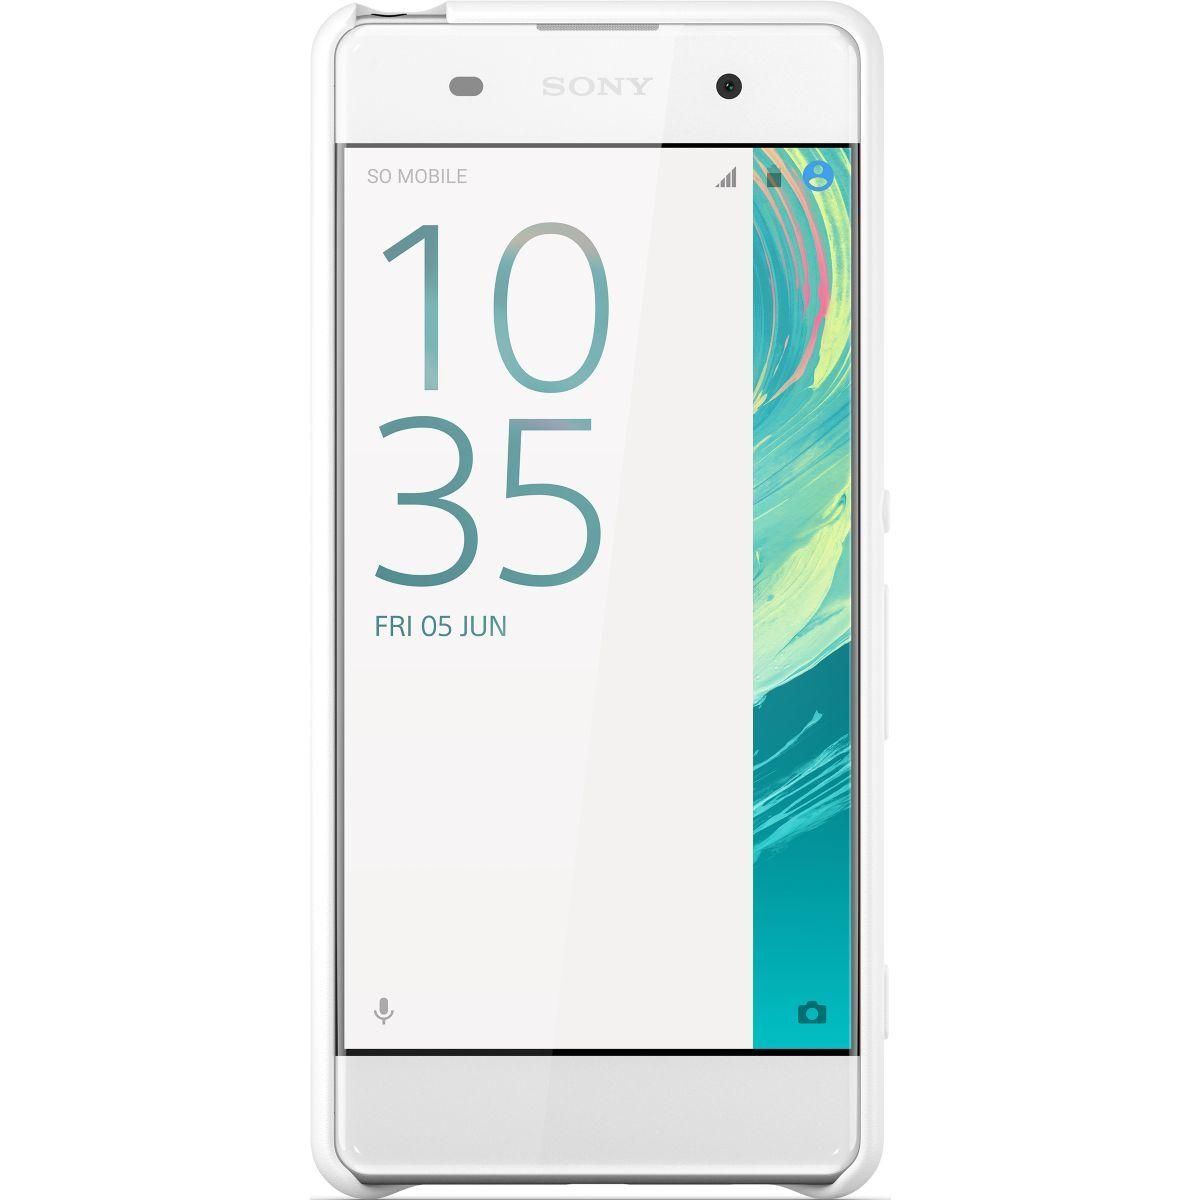 Coque sony xperia xa blanc - soldes et bons plans